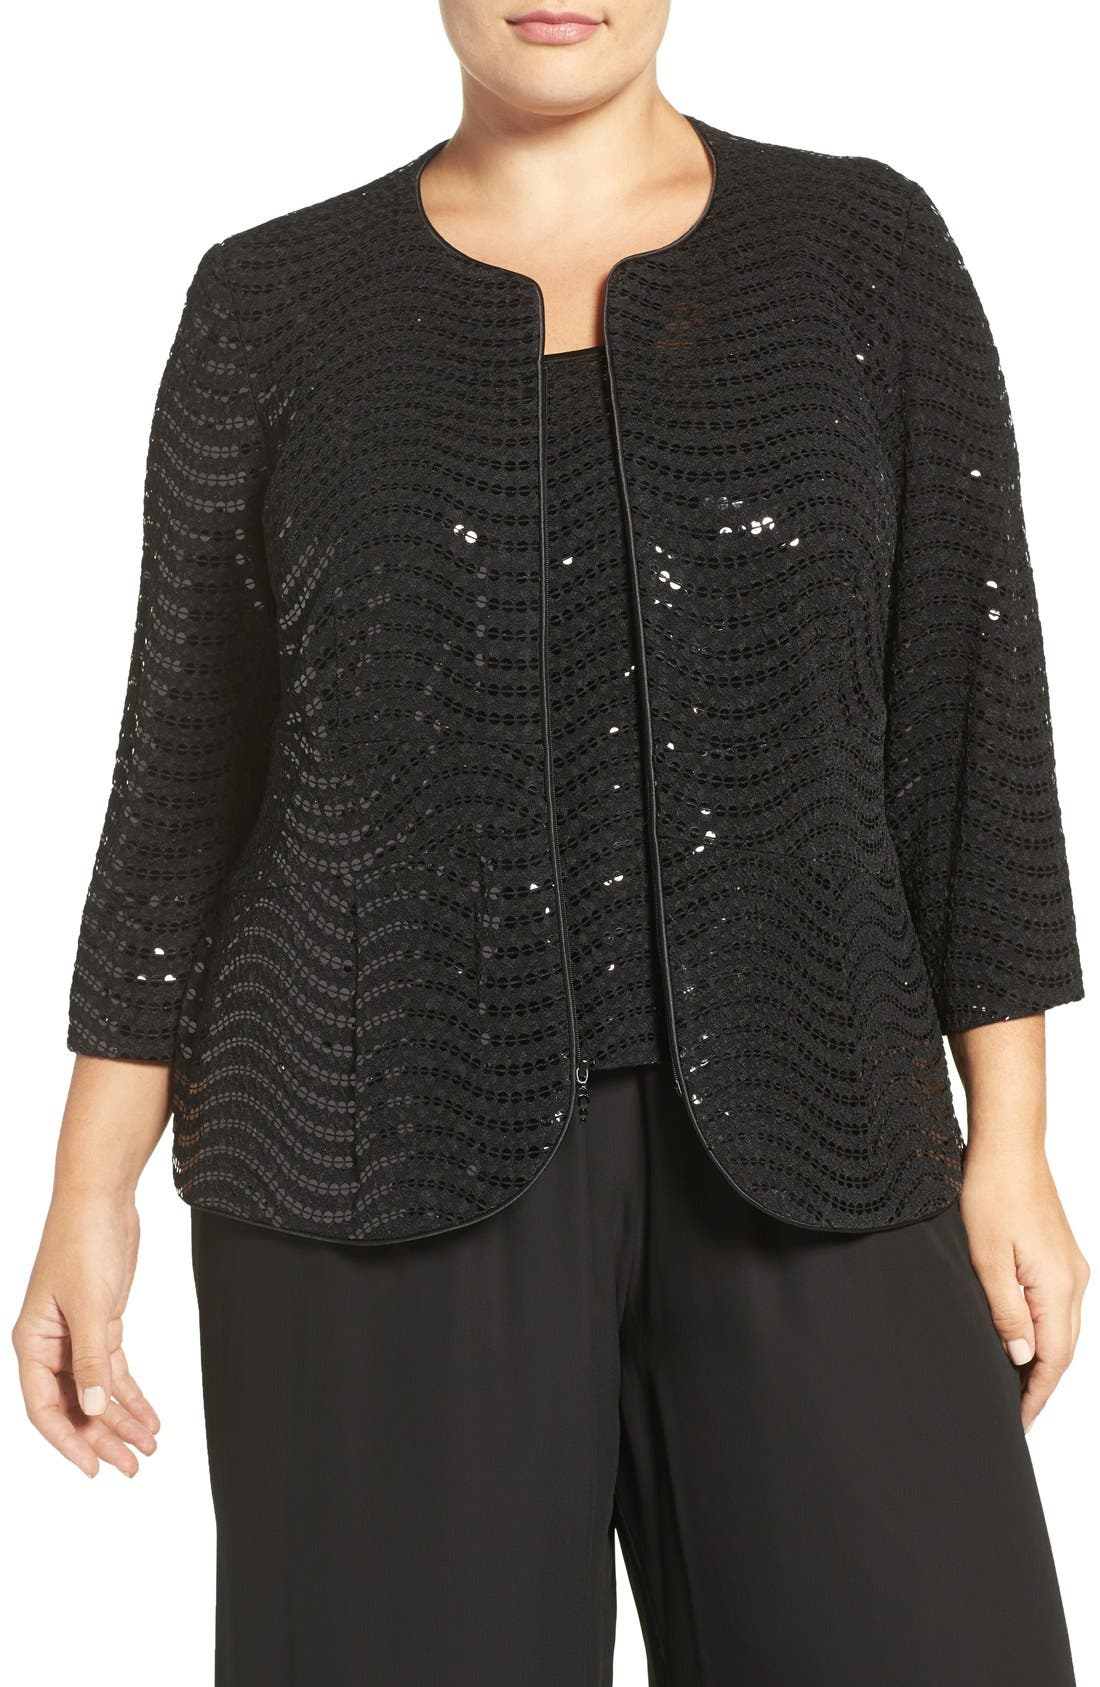 Alternate Image 1 Selected - Alex Evenings Sequin Three-Quarter Sleeve Twinset (Plus Size)